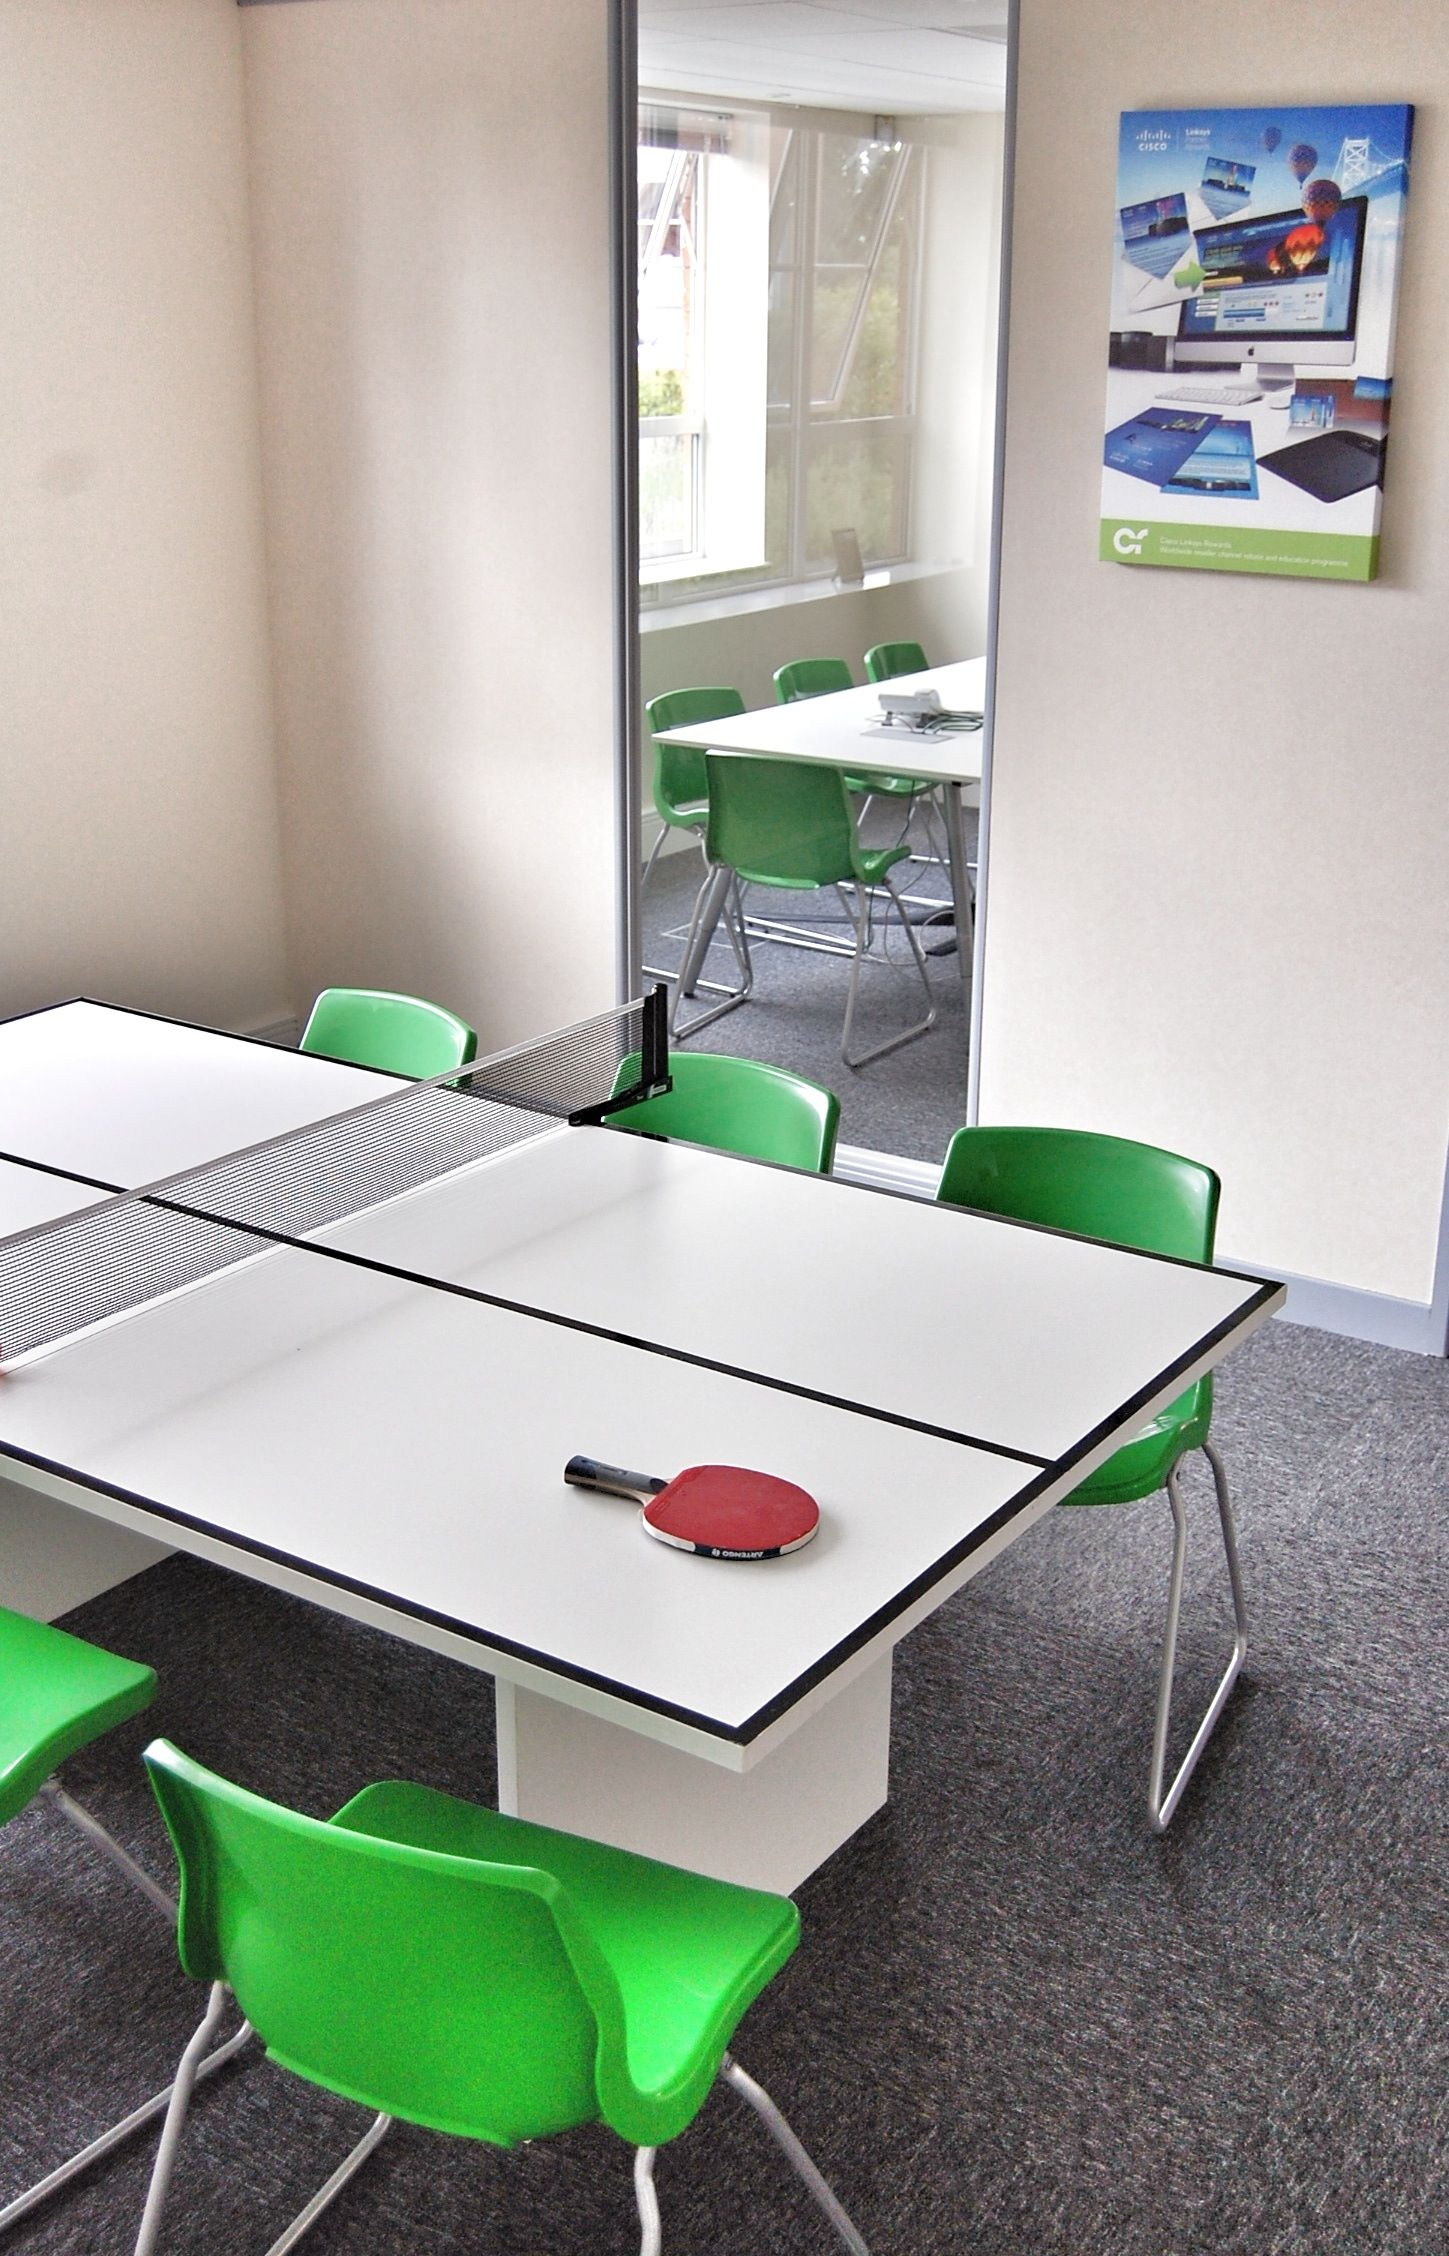 Table Tennis Meeting Table Now That Is What I Am Talking